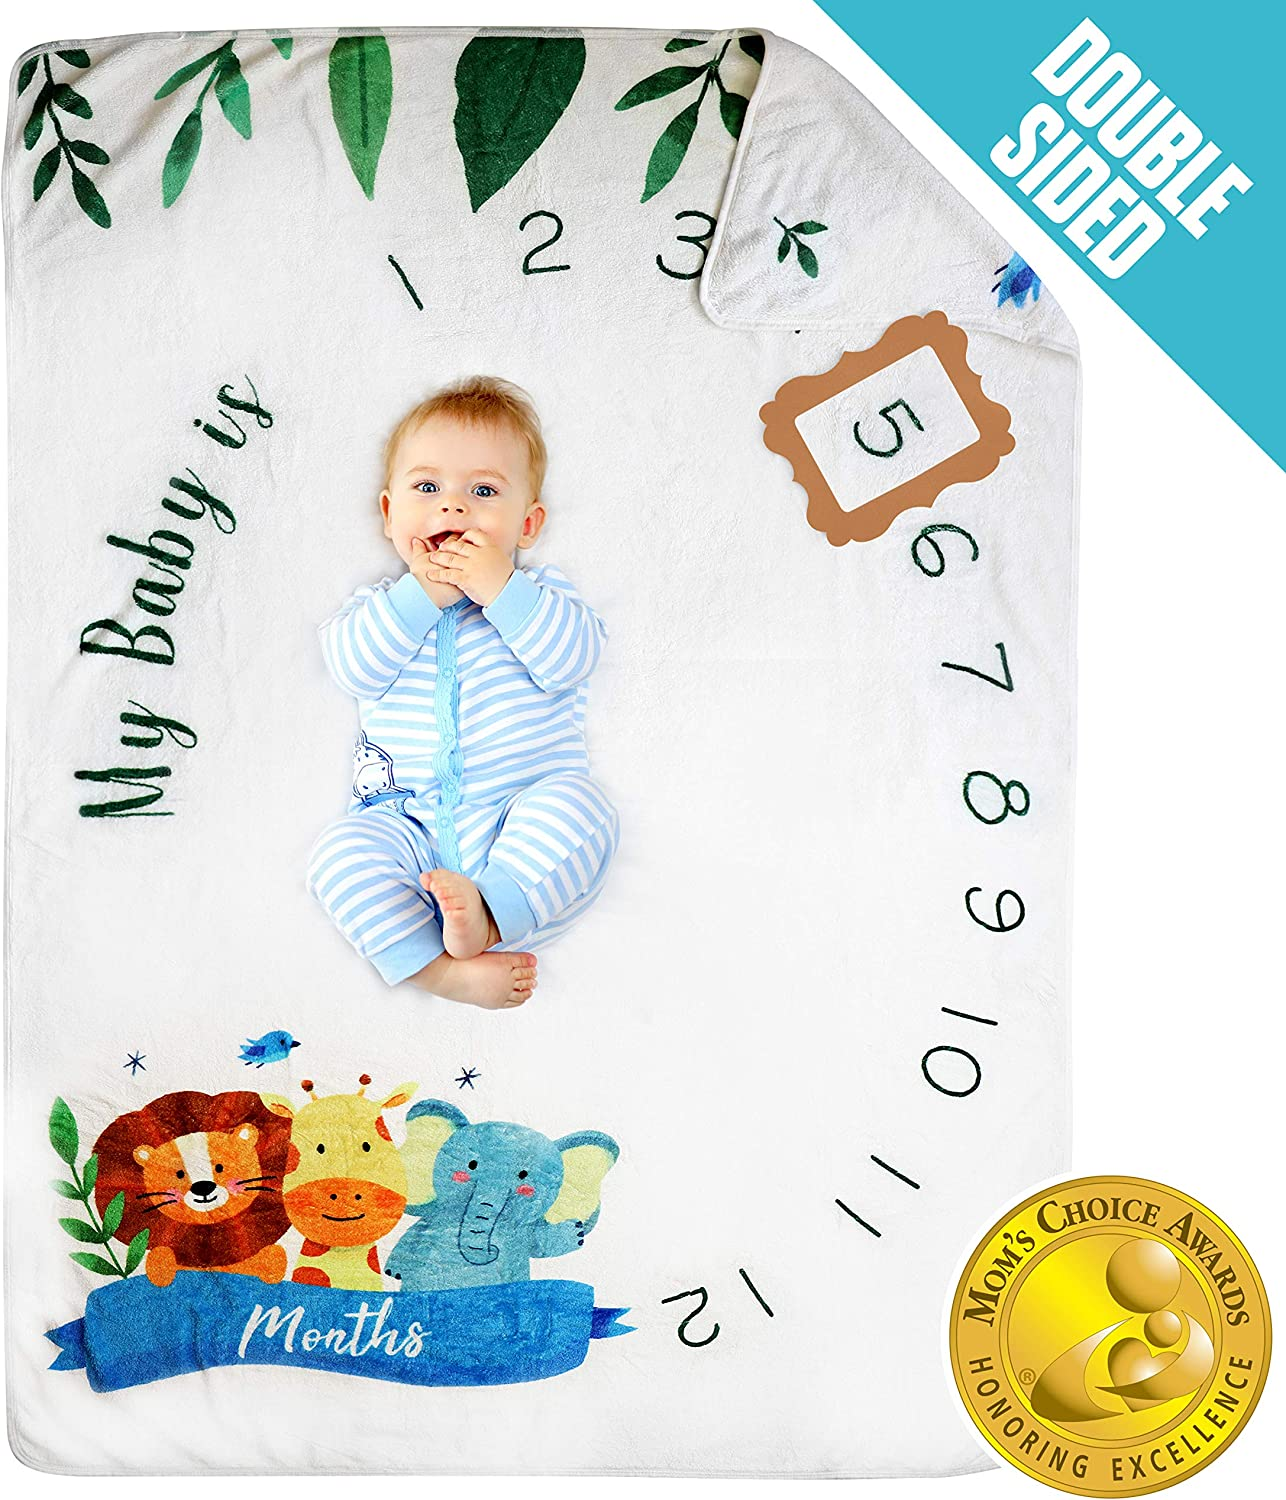 Pamperous Baby Monthly Milestone Blanket - Mom's Choice Award Winner, 100% Organic, Double Sided, Extra Thick, Photo Backdrop and Prop, Bed Blanket for Newborn Boys/Girls/Unisex